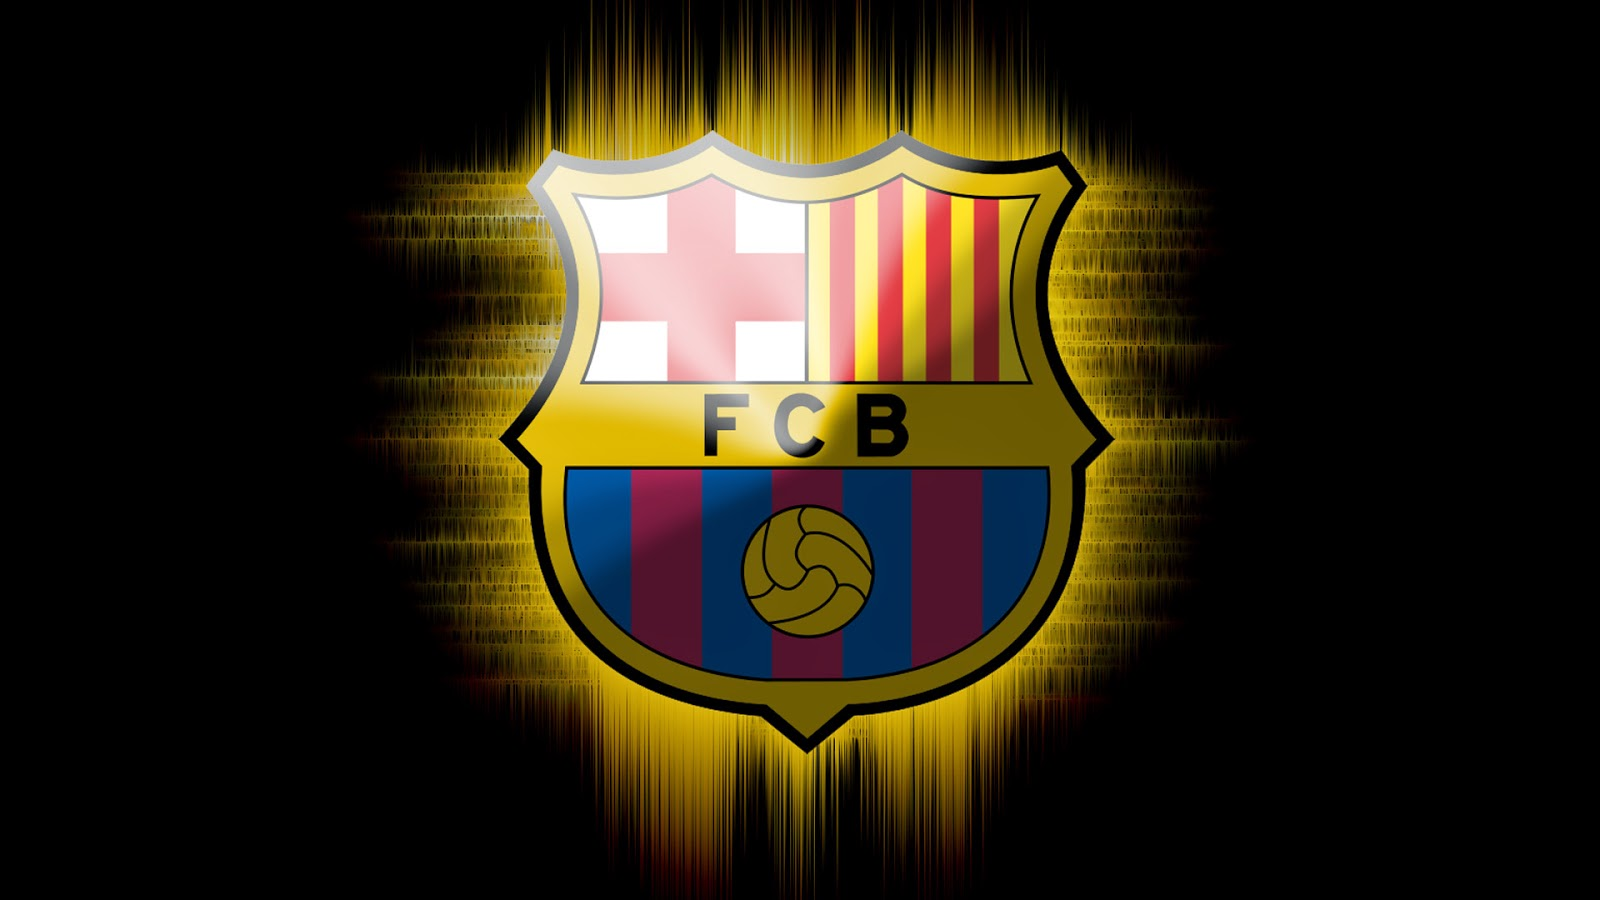 fc barcelona logo new hd wallpaper 2014 world fresh hd wallapers